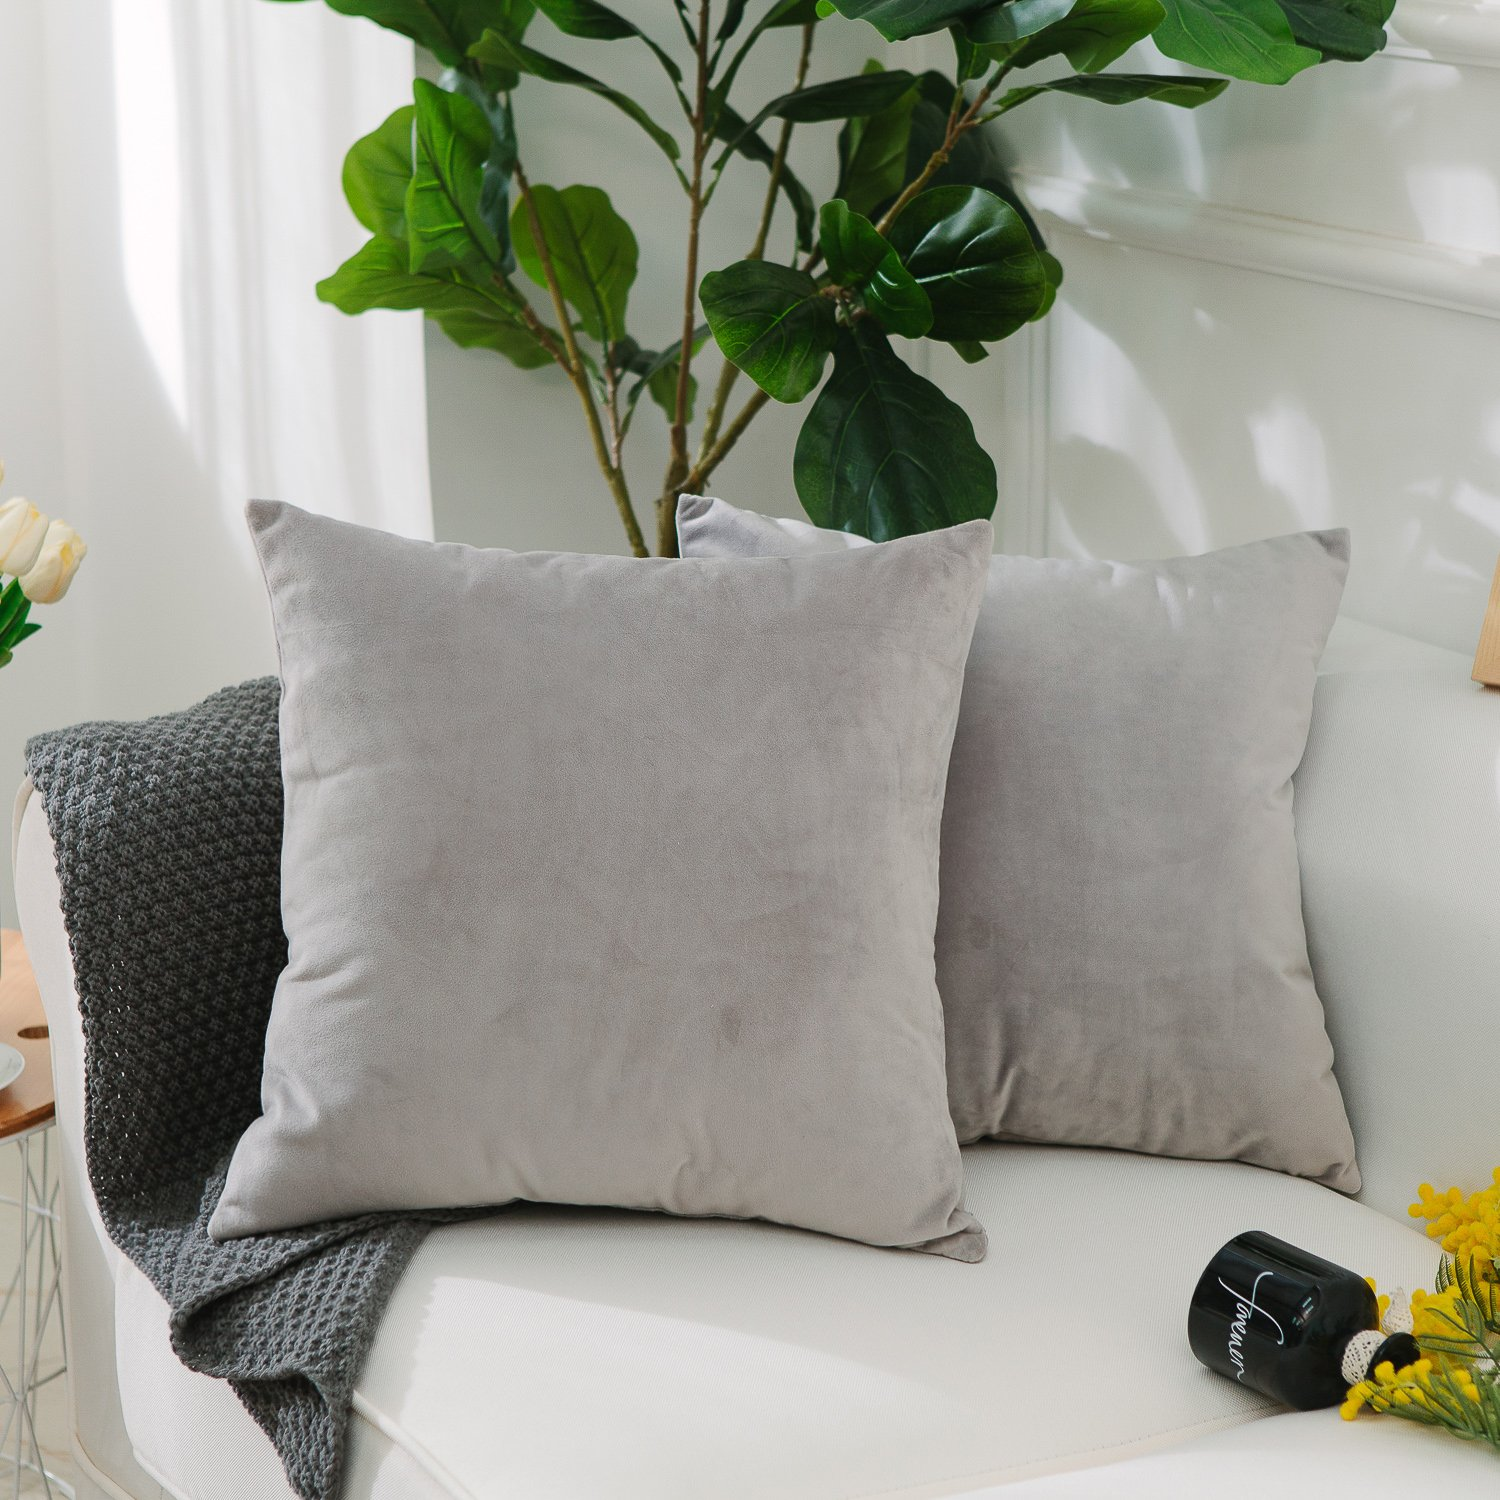 Home Brilliant Square Pillow Cover Decor Supersoft Velvet Plush Cushion Covers Decorative, 20x20 inches (50cm), Grey